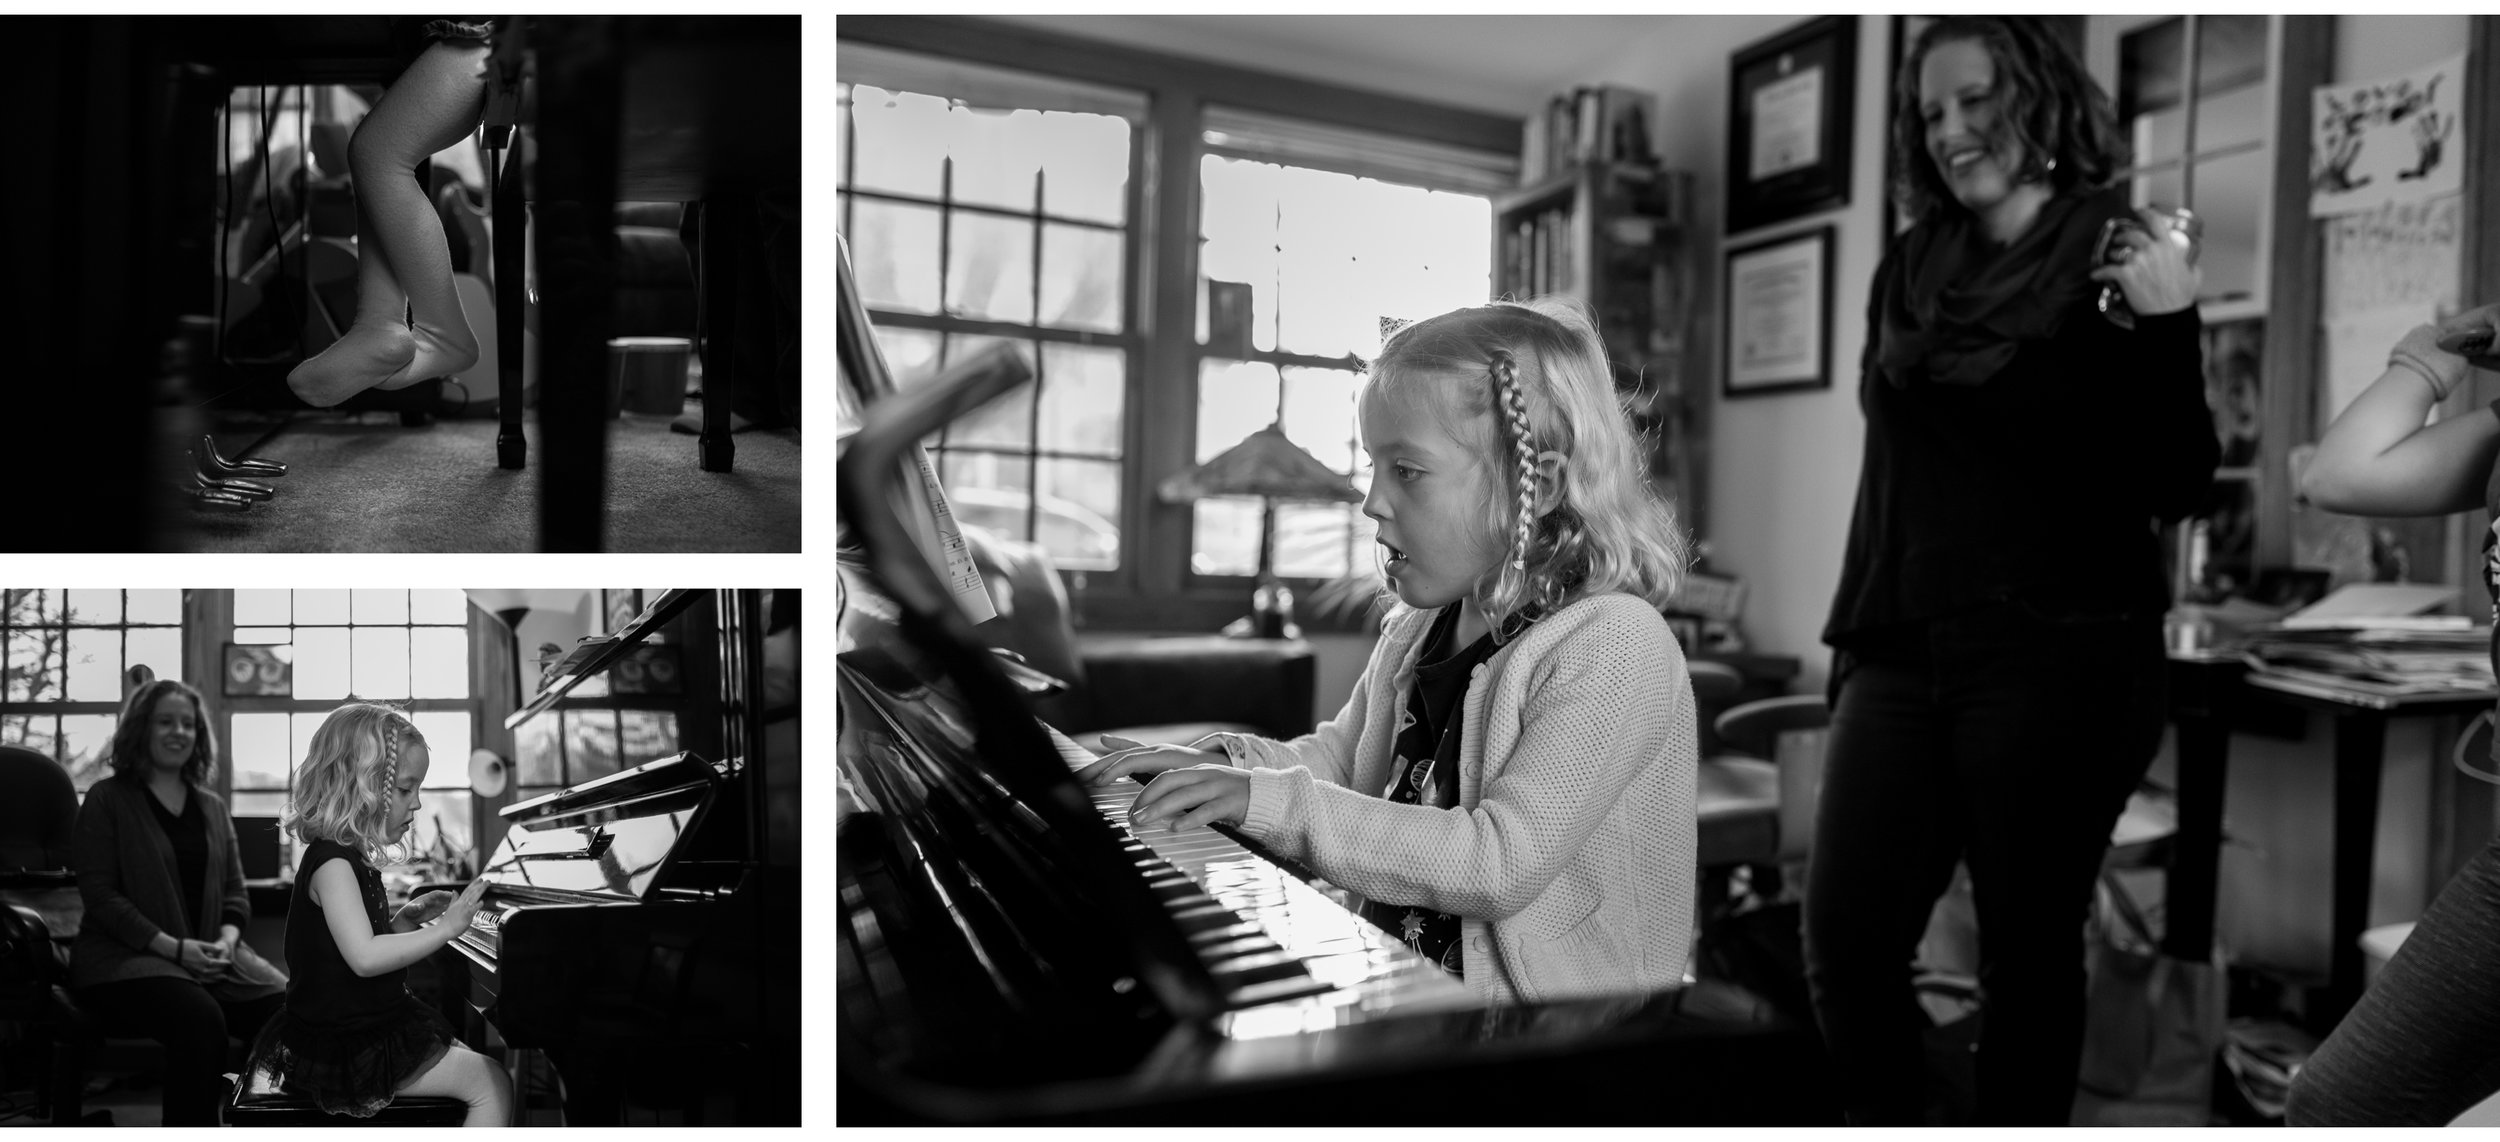 Little Sister is still playing the piano and wearing her hair in a side braid. Her feet still don't reach the pedals, but they are getting much closer. And Mom is able to be more of a passive observer now.